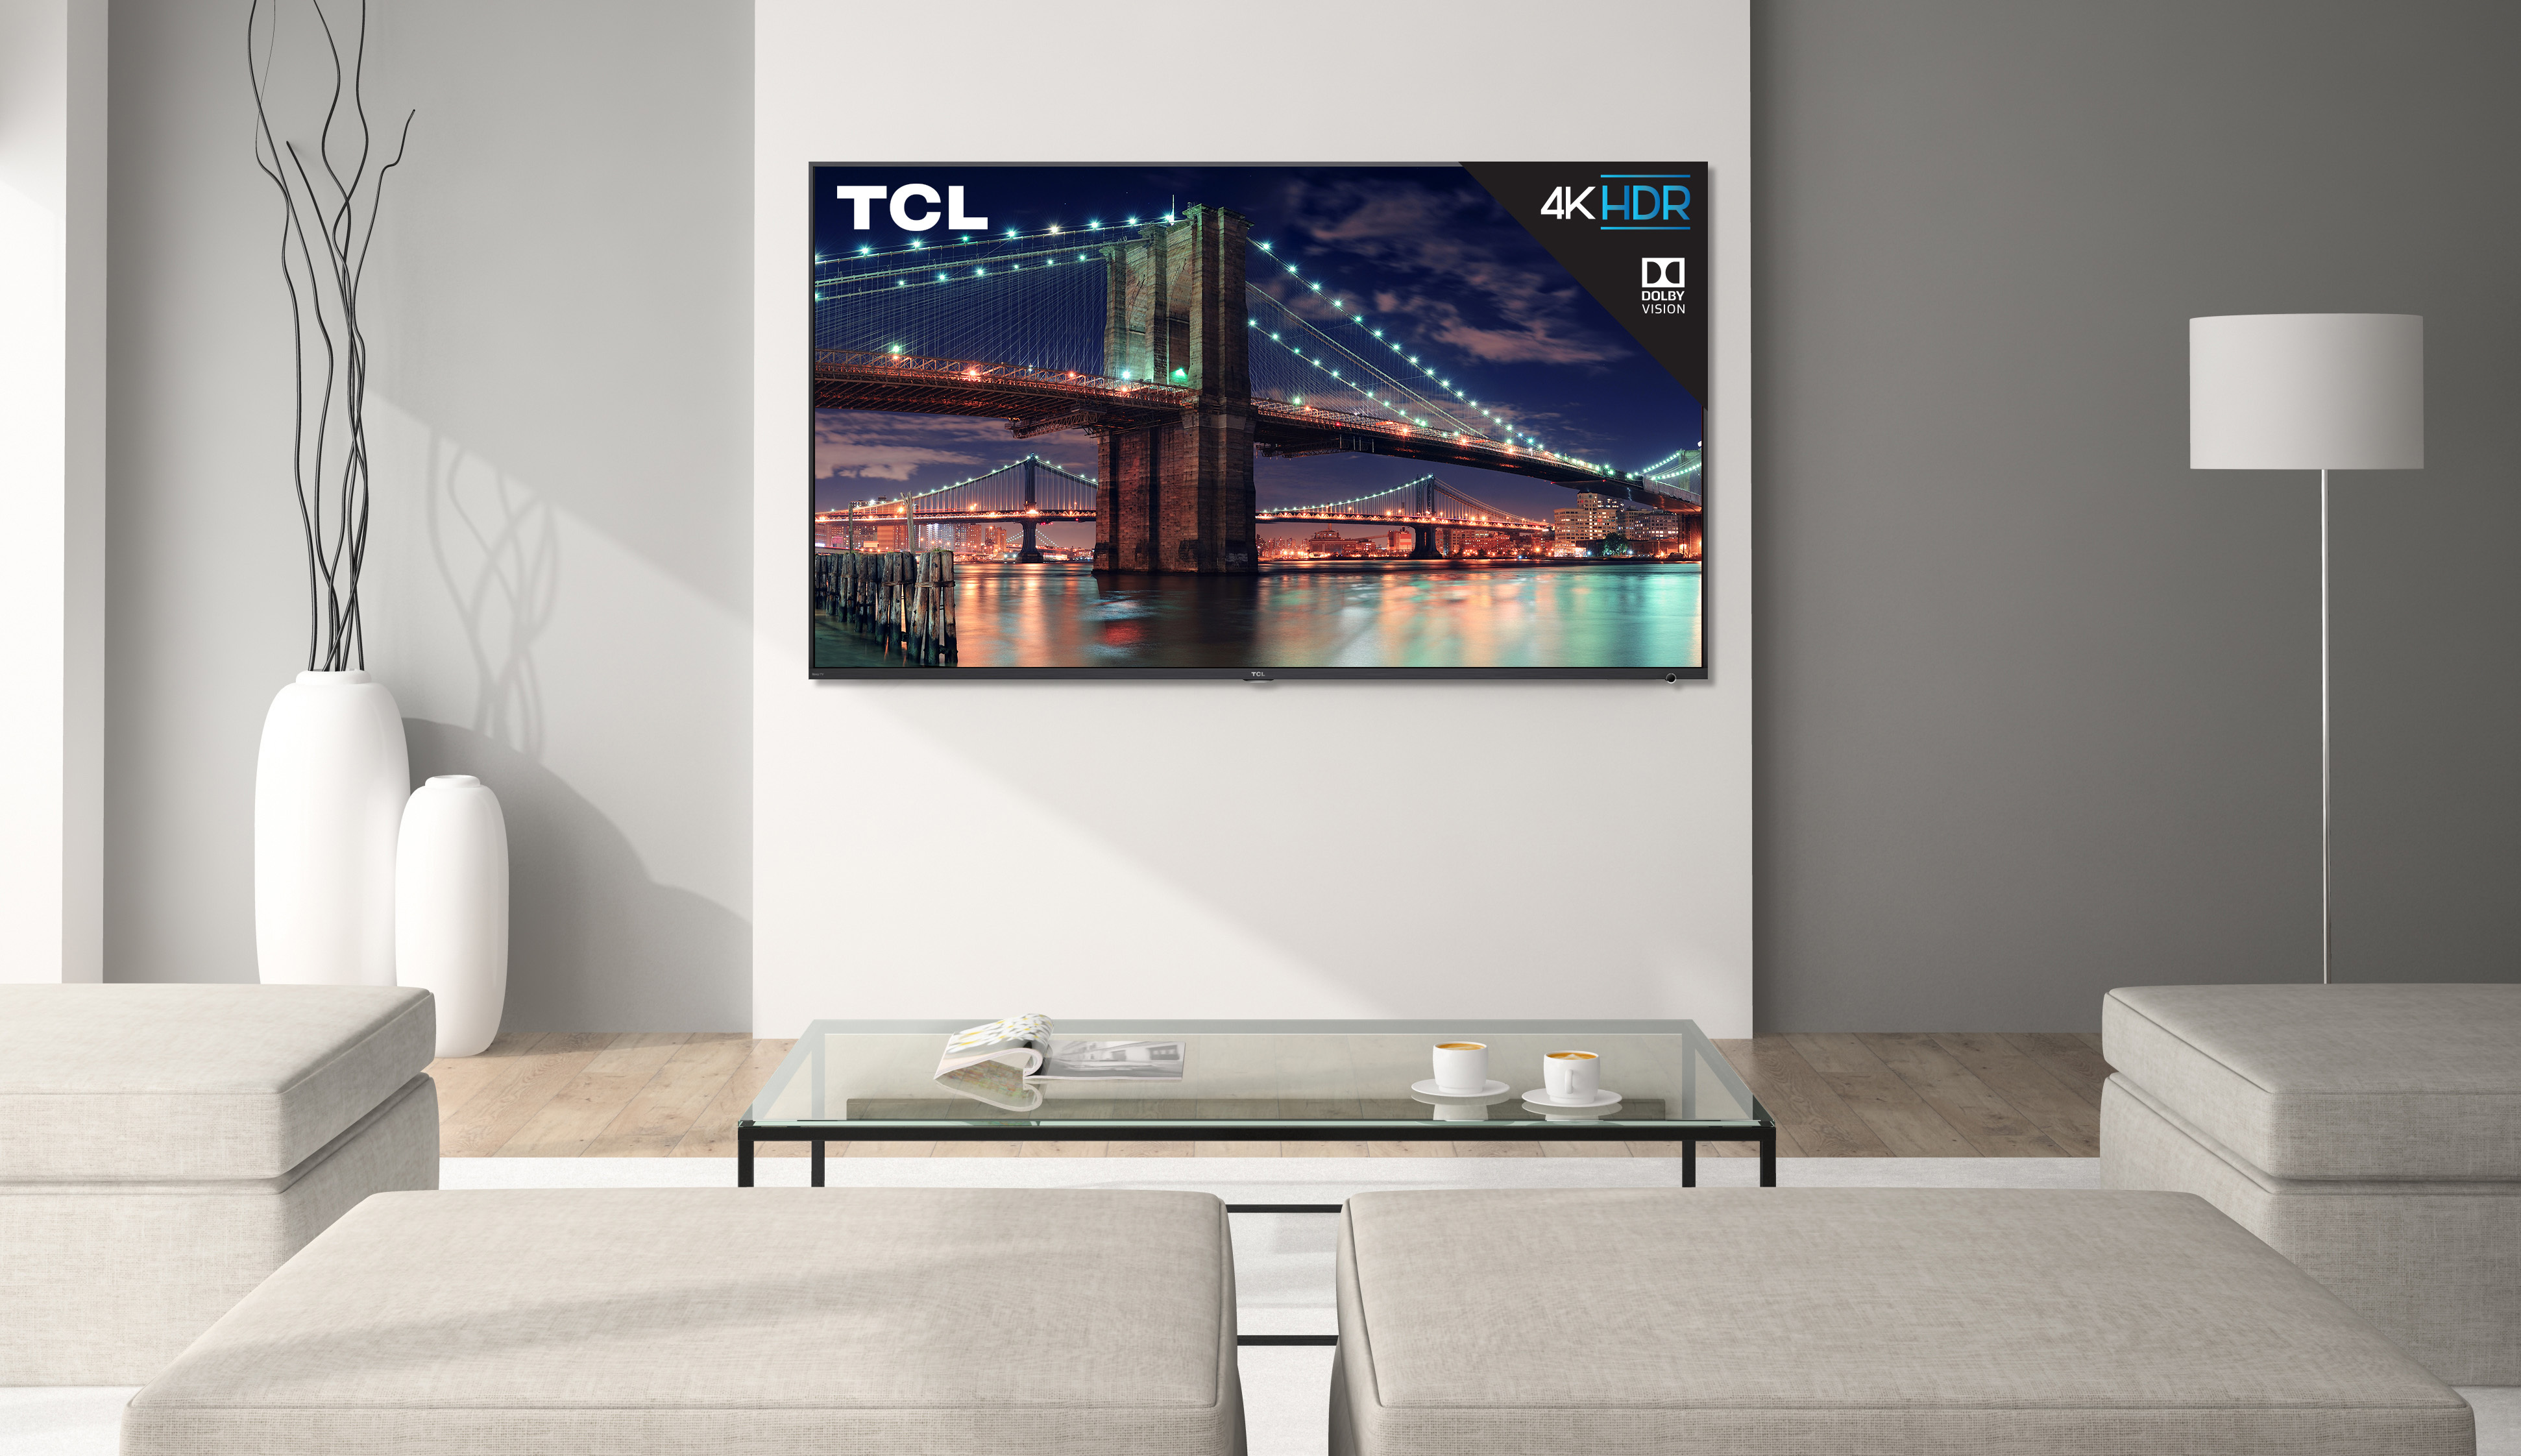 Roku Featured In TCL\'s Expanded Home Entertainment Lineup At CES ...